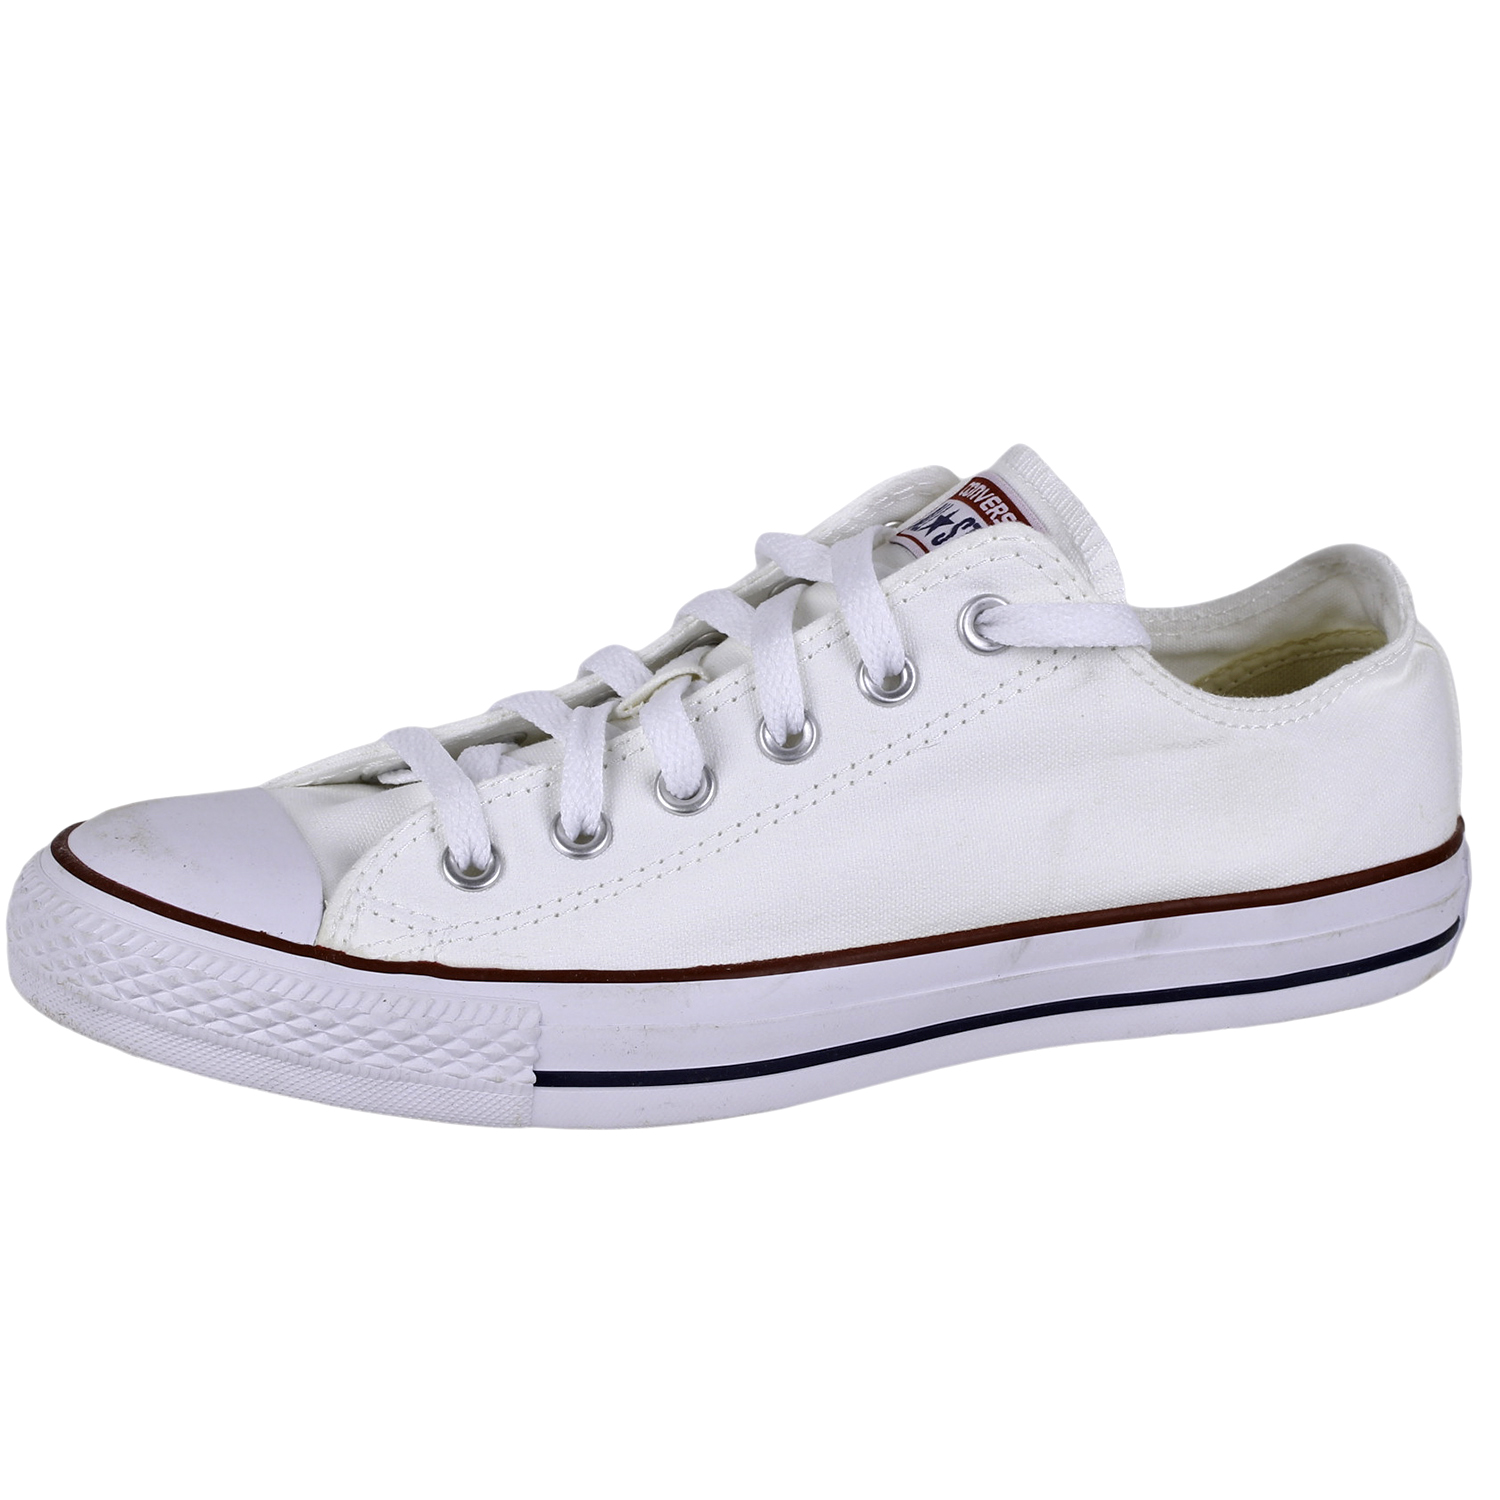 866a00e0d0e9 Details about Converse Men s All Star Chuck Taylor Lo Top Shoes M7652  Optical White size 8